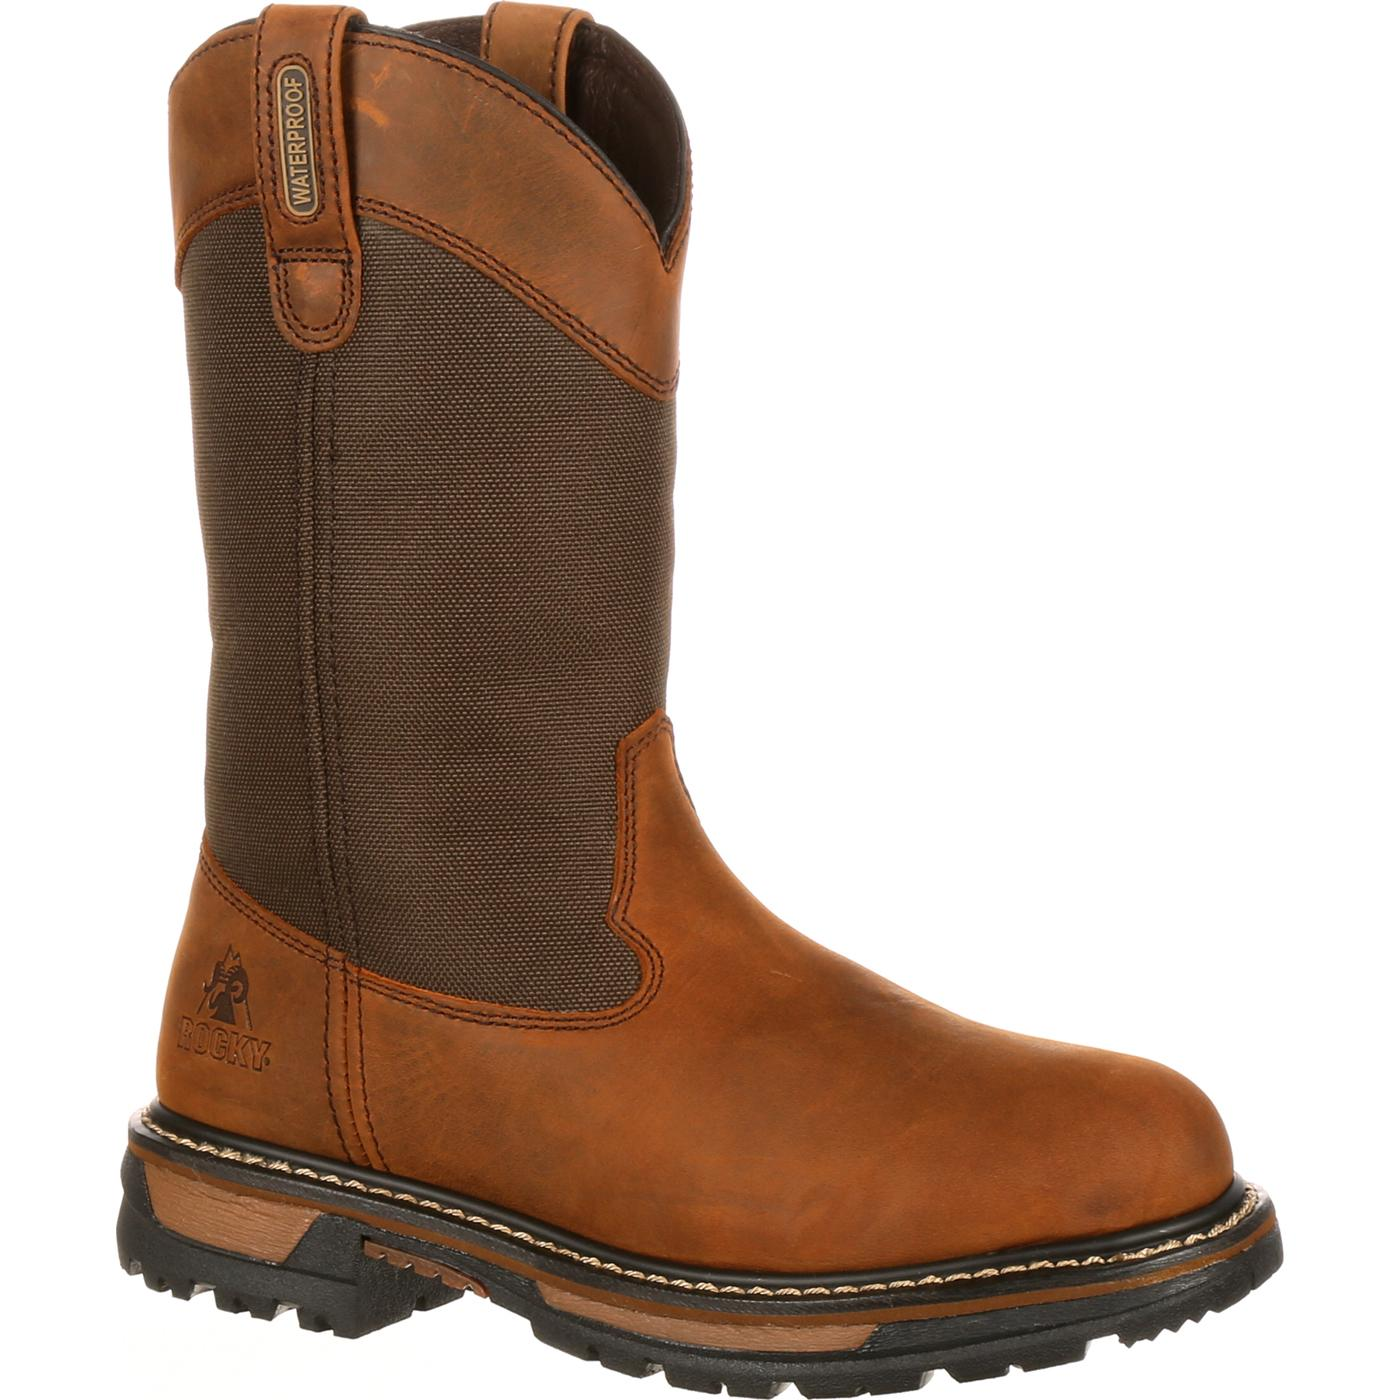 Rocky Ride 200g Insulated Waterproof Wellington Boot